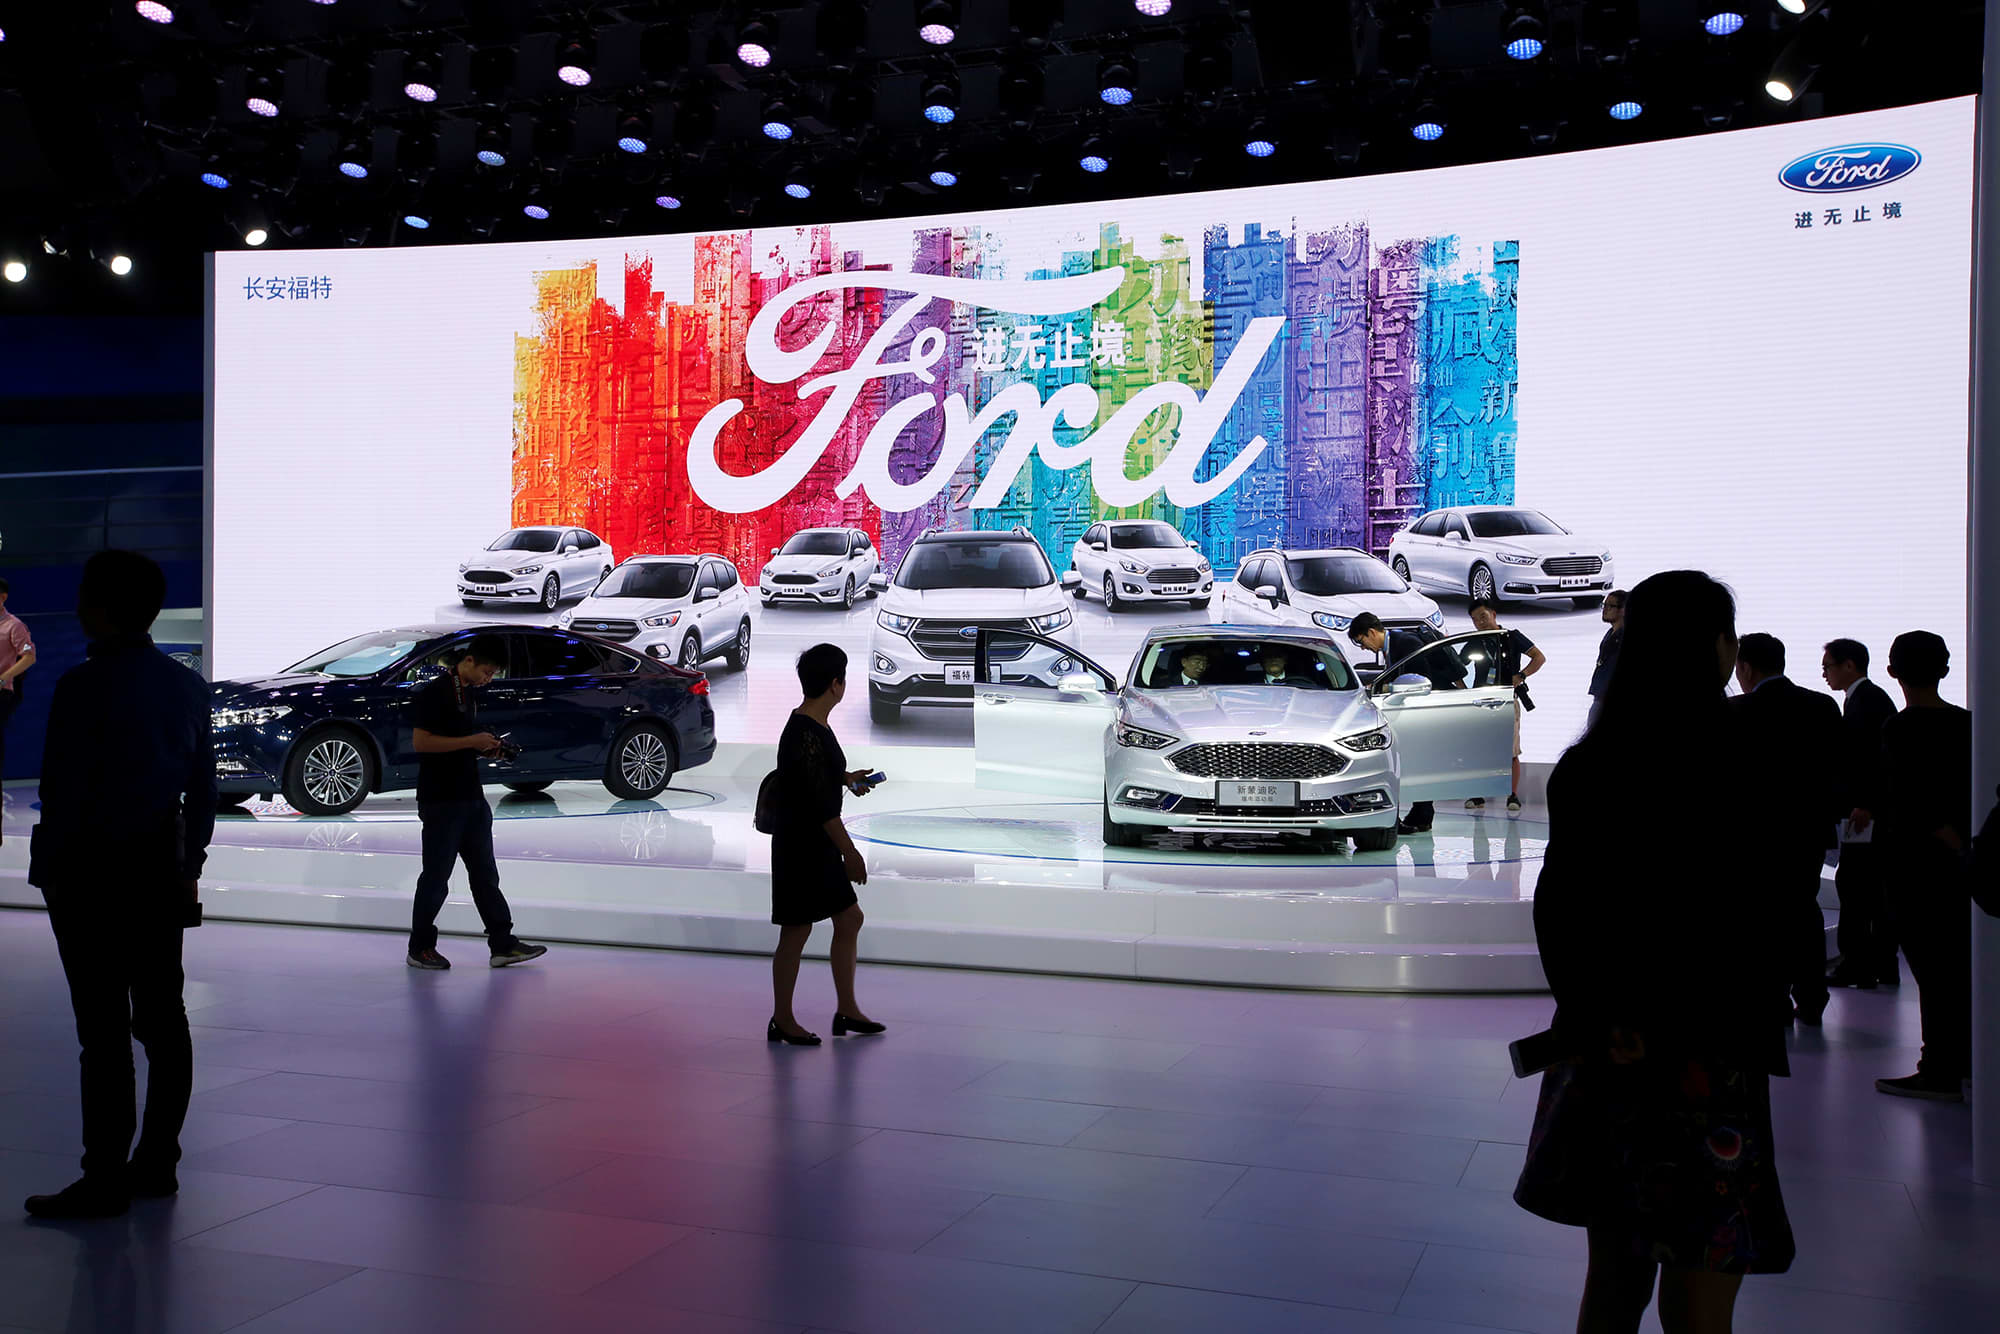 Survey: Automotive industry hit most by both US and China